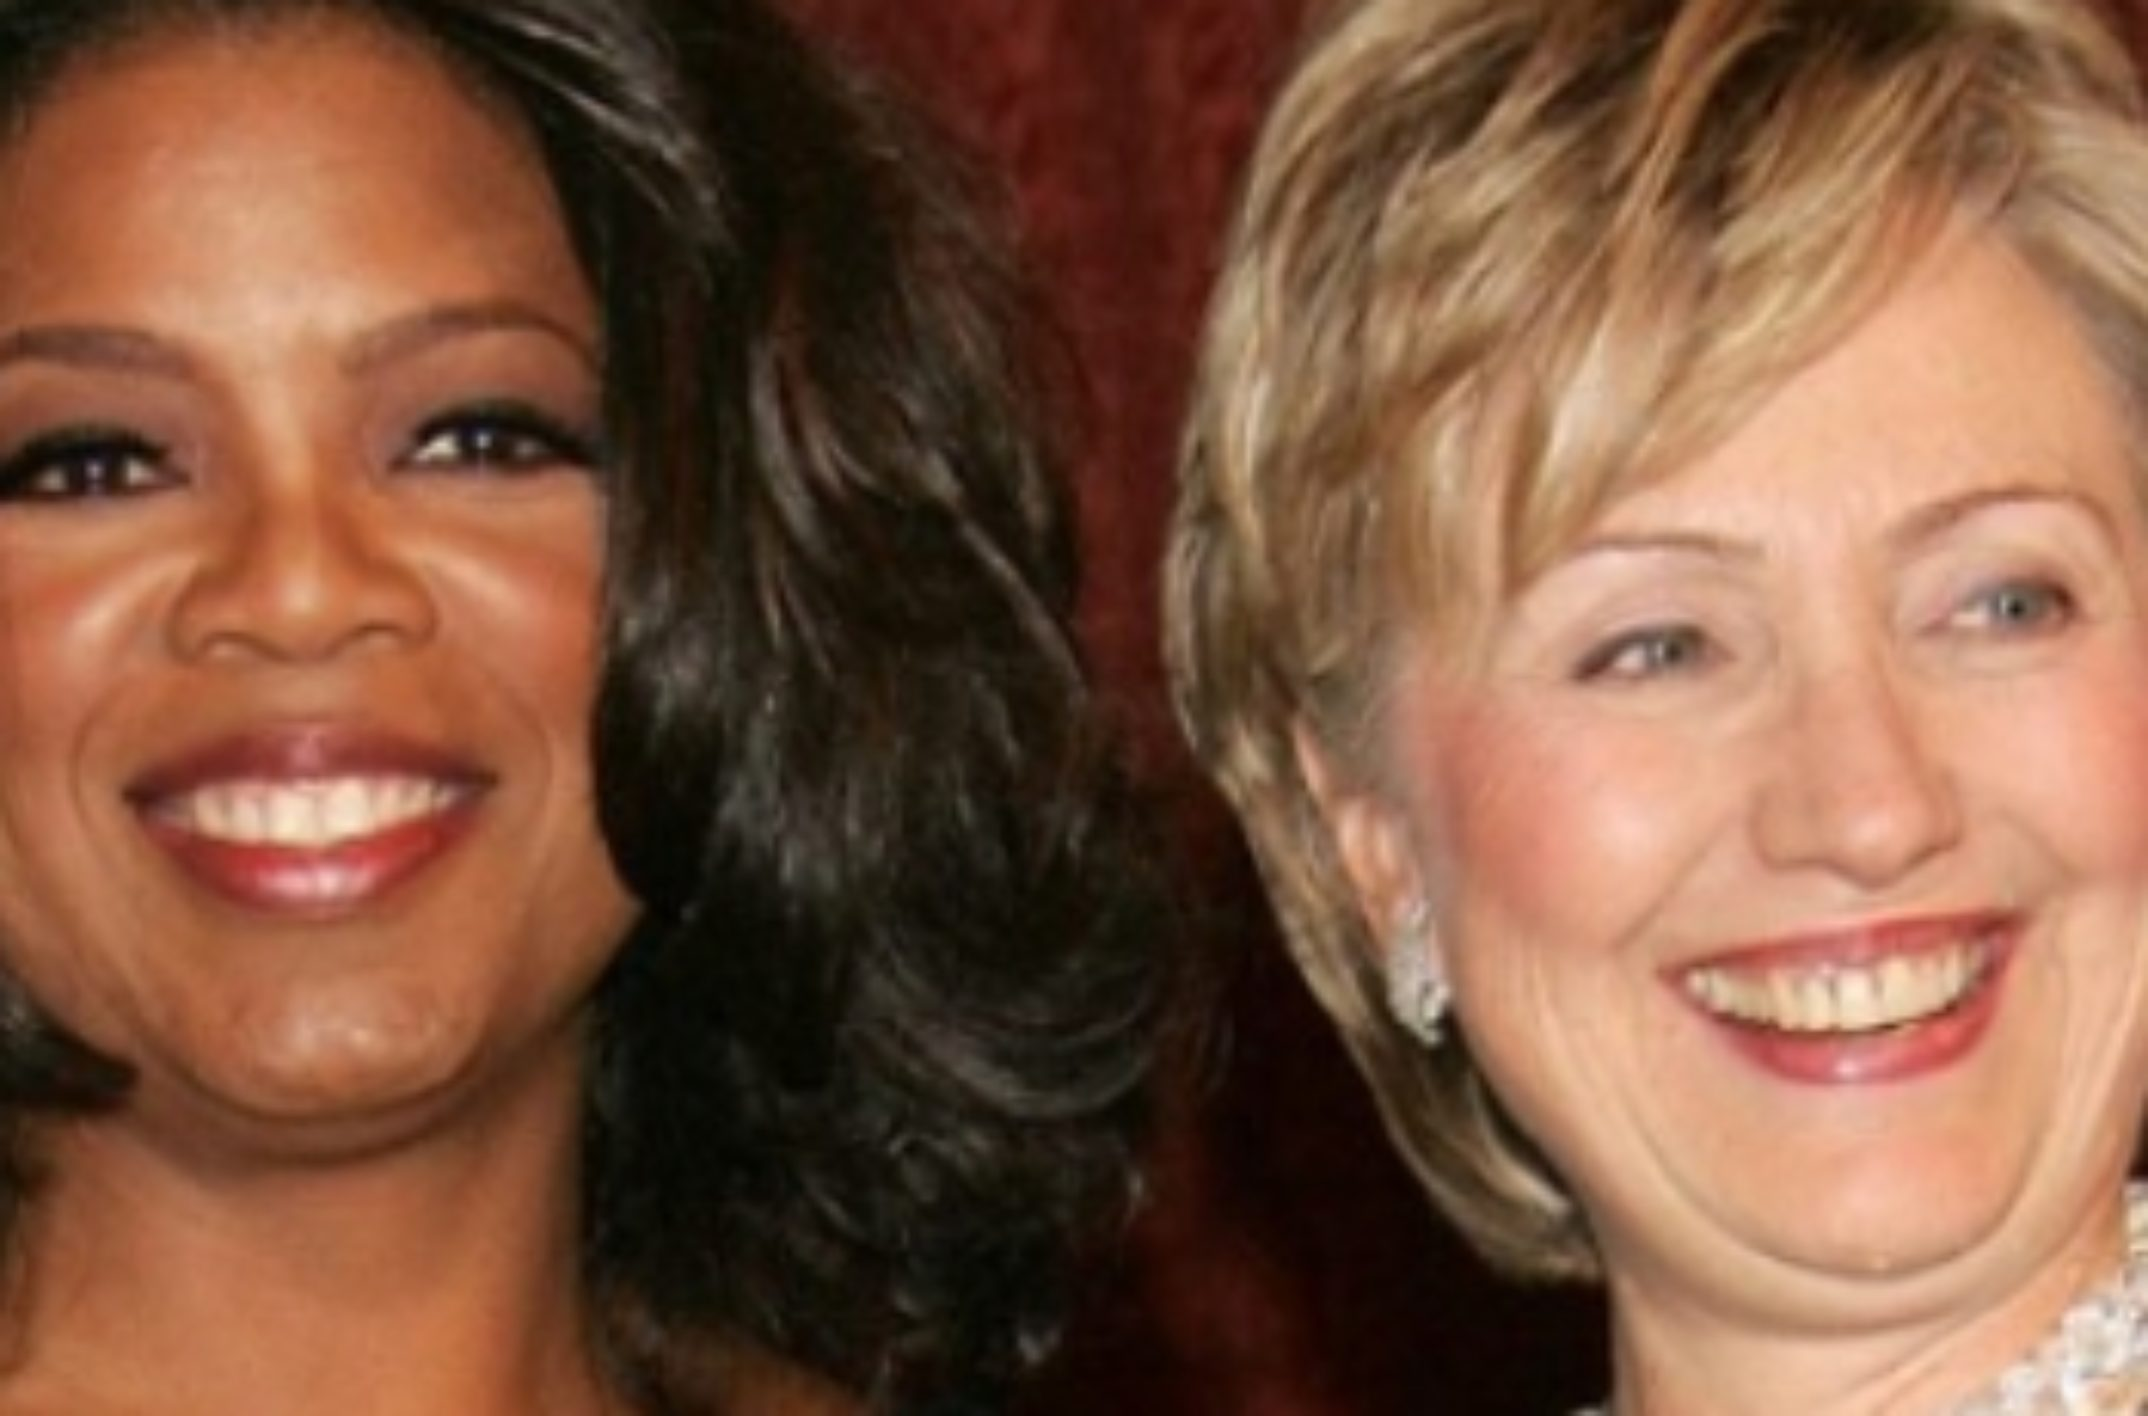 oprah-winfrey-says-im-with-her-endorsing-hillary-clinton-for-president1-2148x1416_1